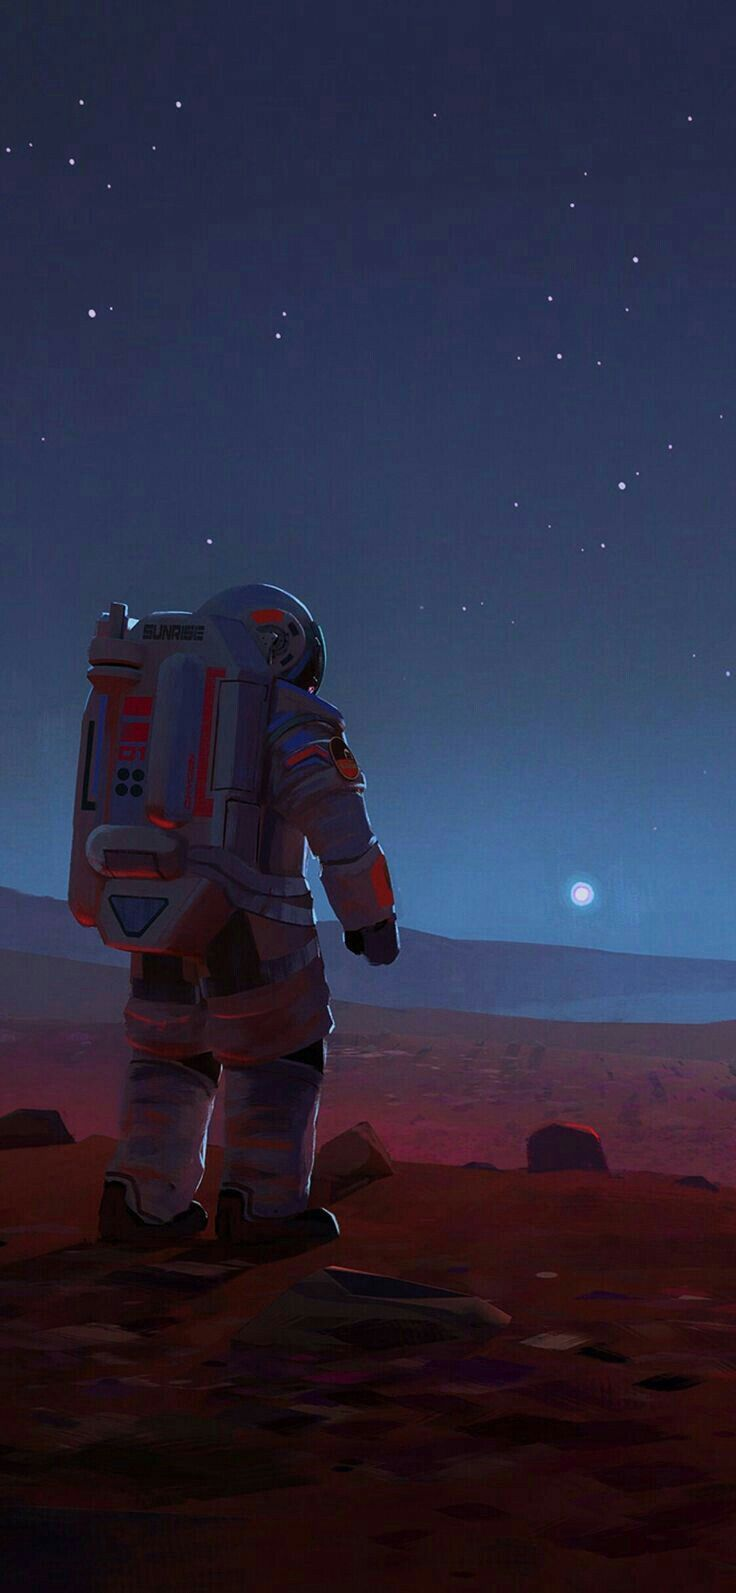 How Much Further God In 2020 Astronaut Wallpaper Space Art